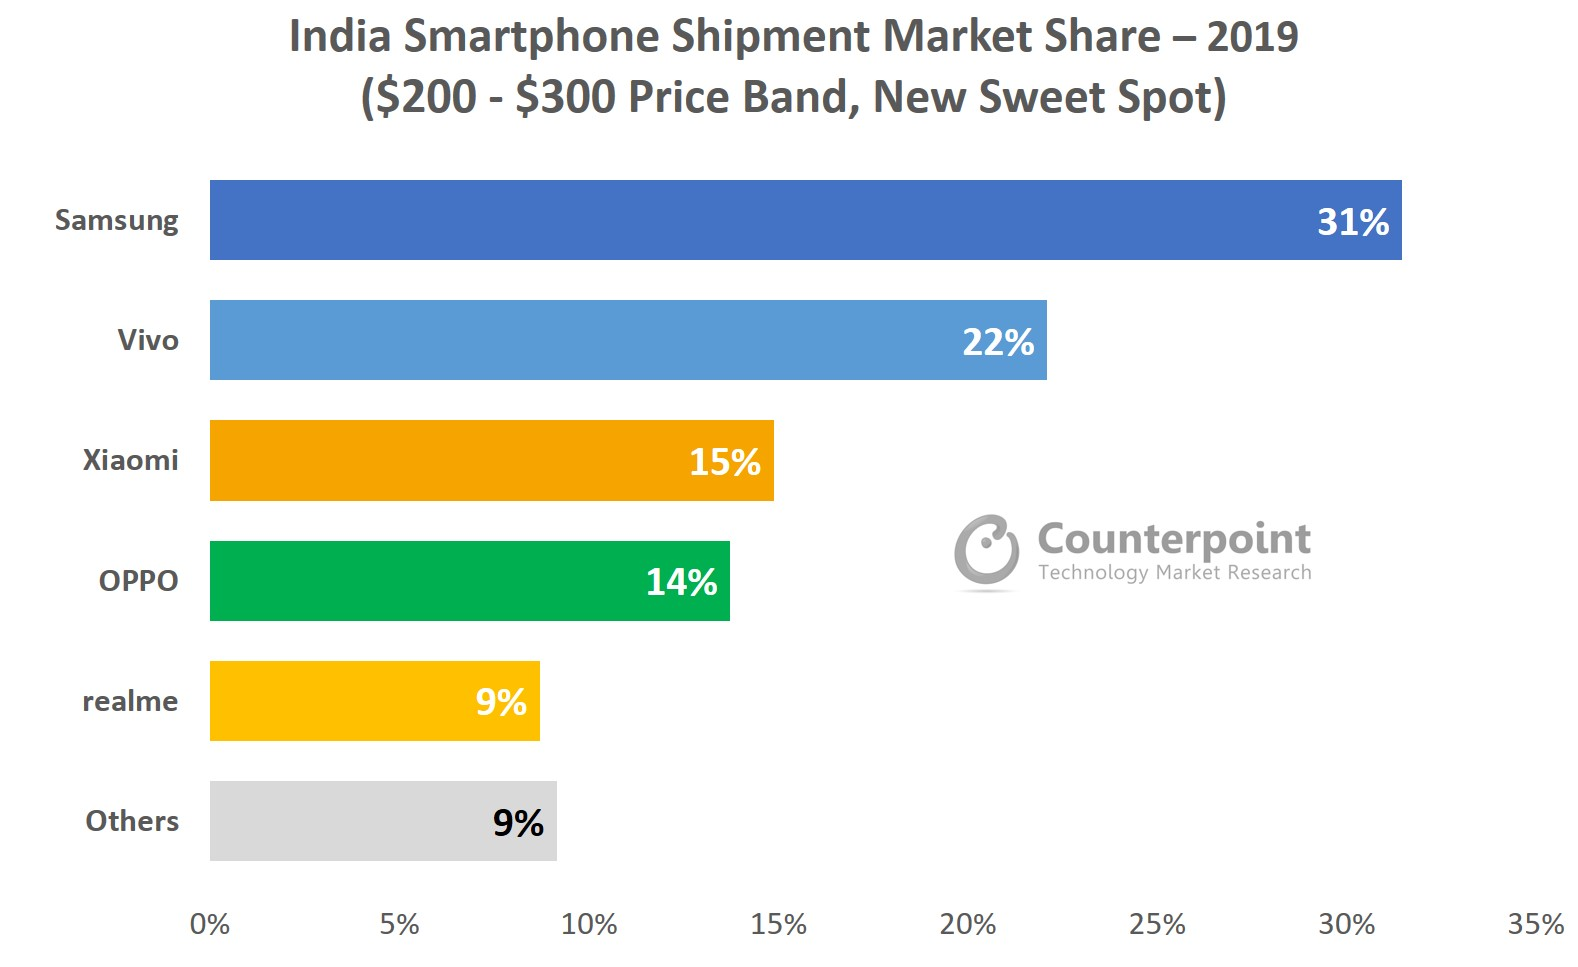 counterpoint India market share 2019 $200-$300